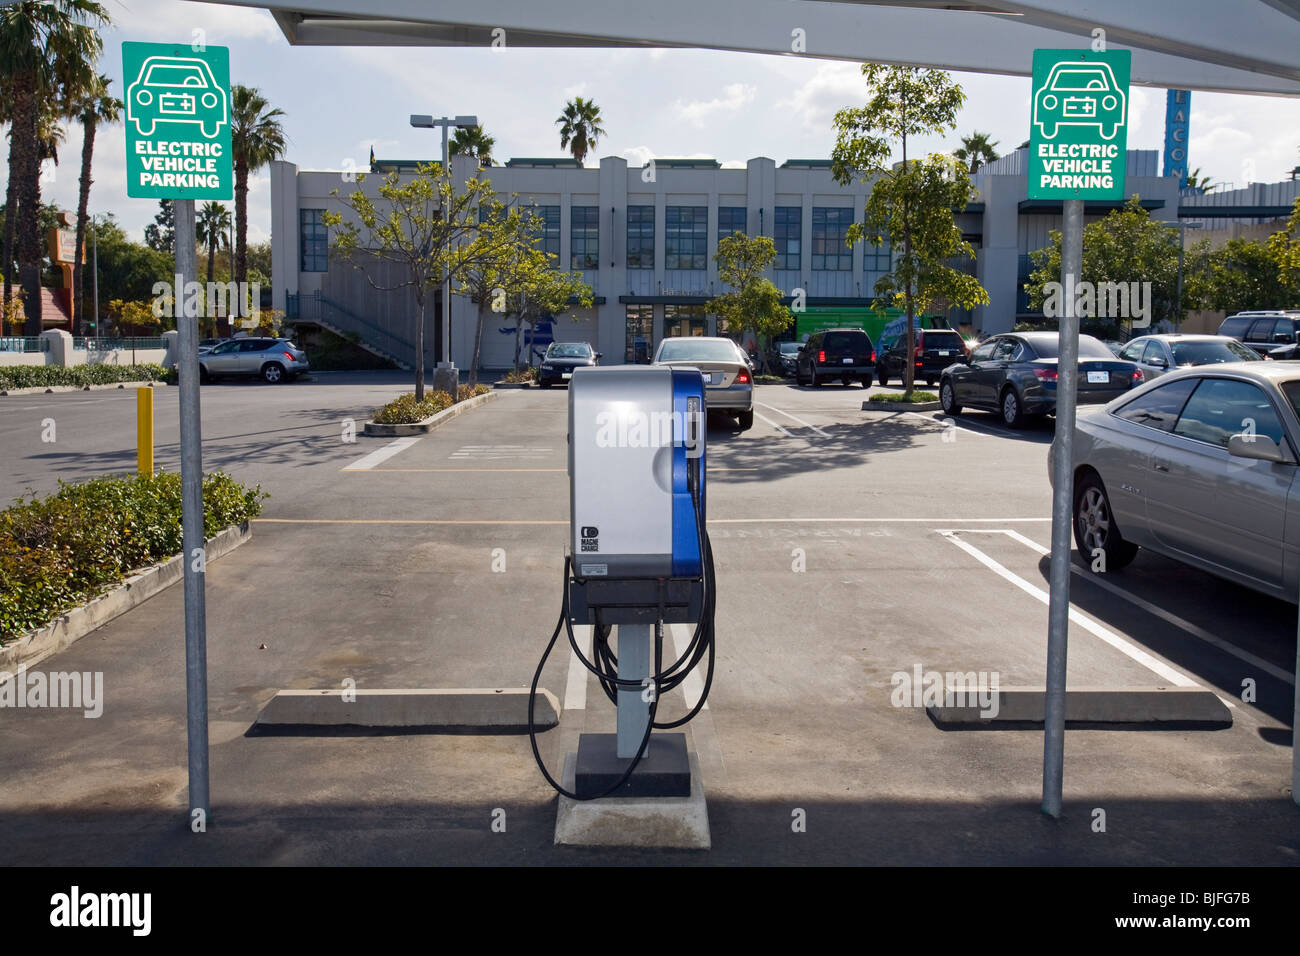 Electric Vehicle Charging Station, Culver City, Los Angeles, California, USA - Stock Image